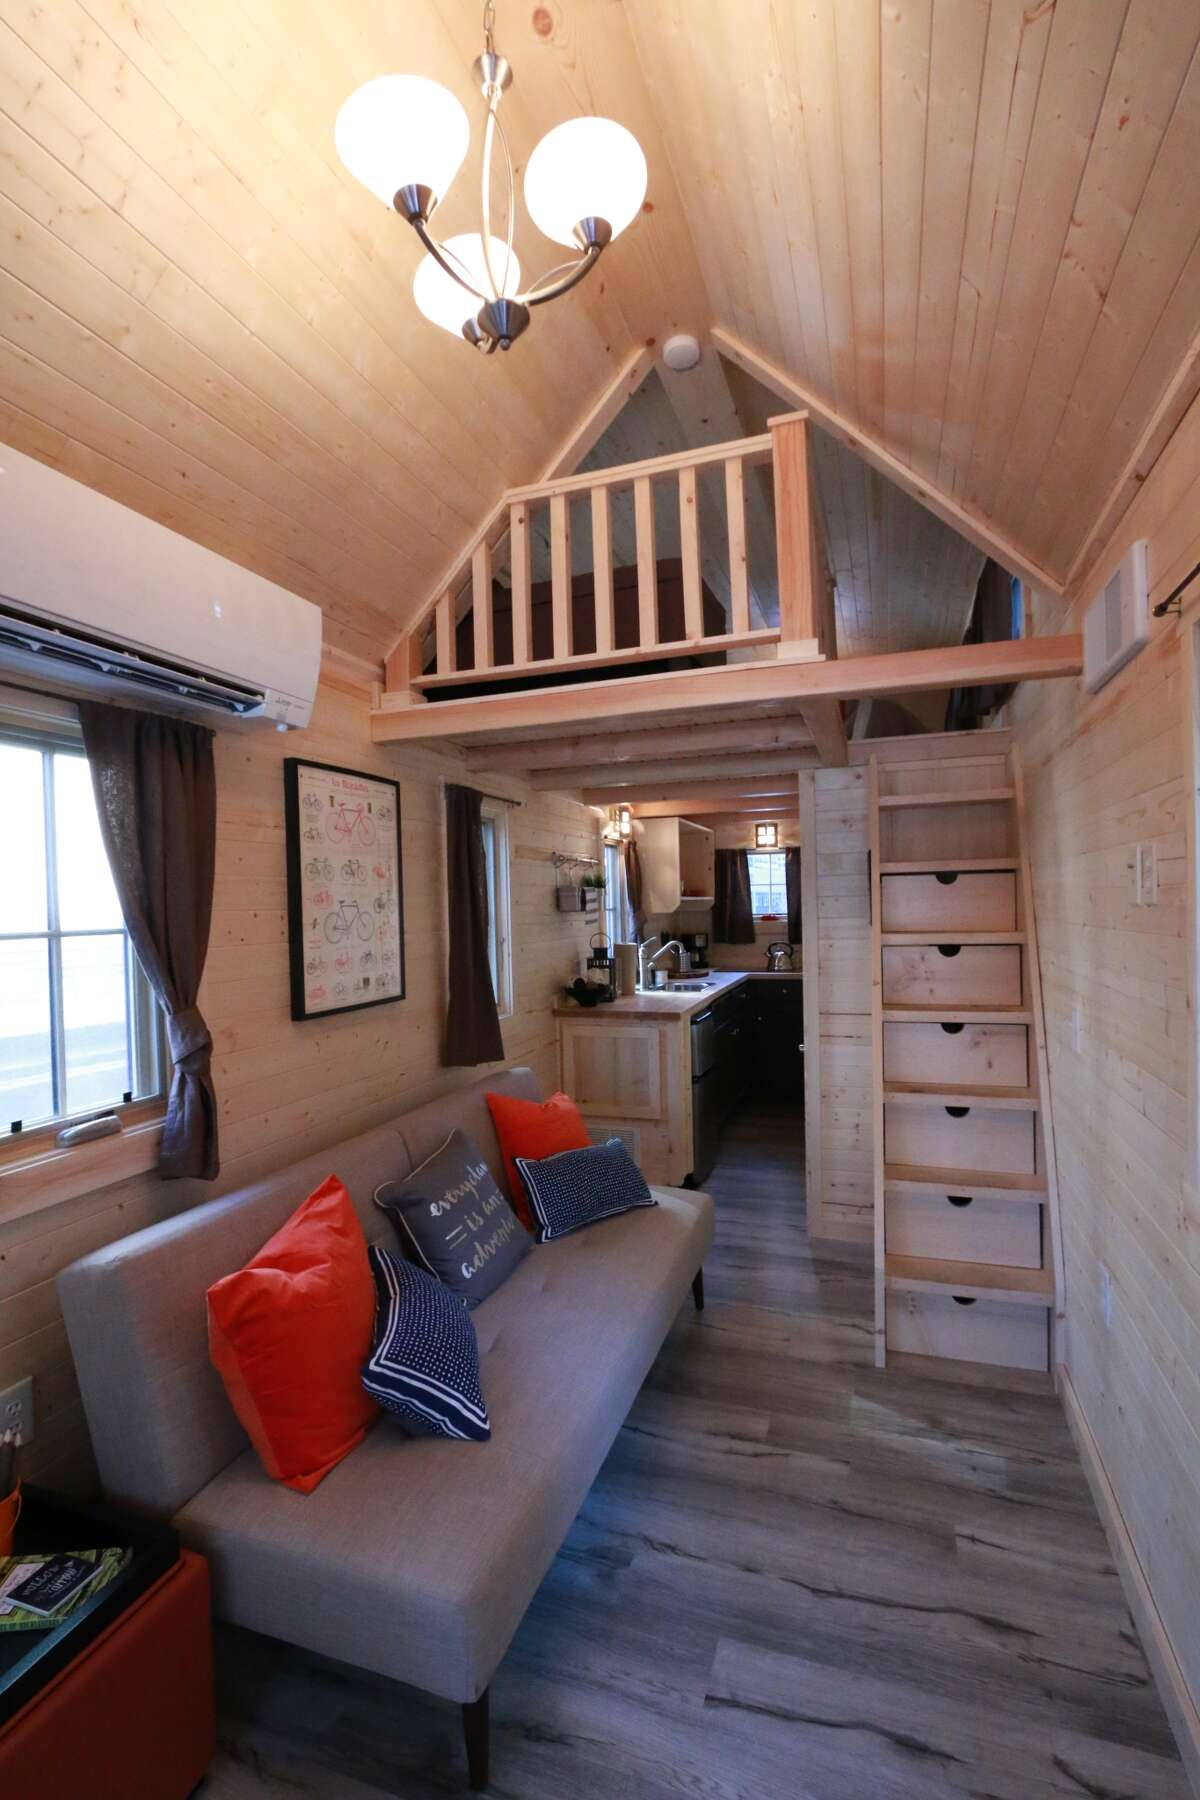 The Finn tiny house model offers campers more luxury than a tent.